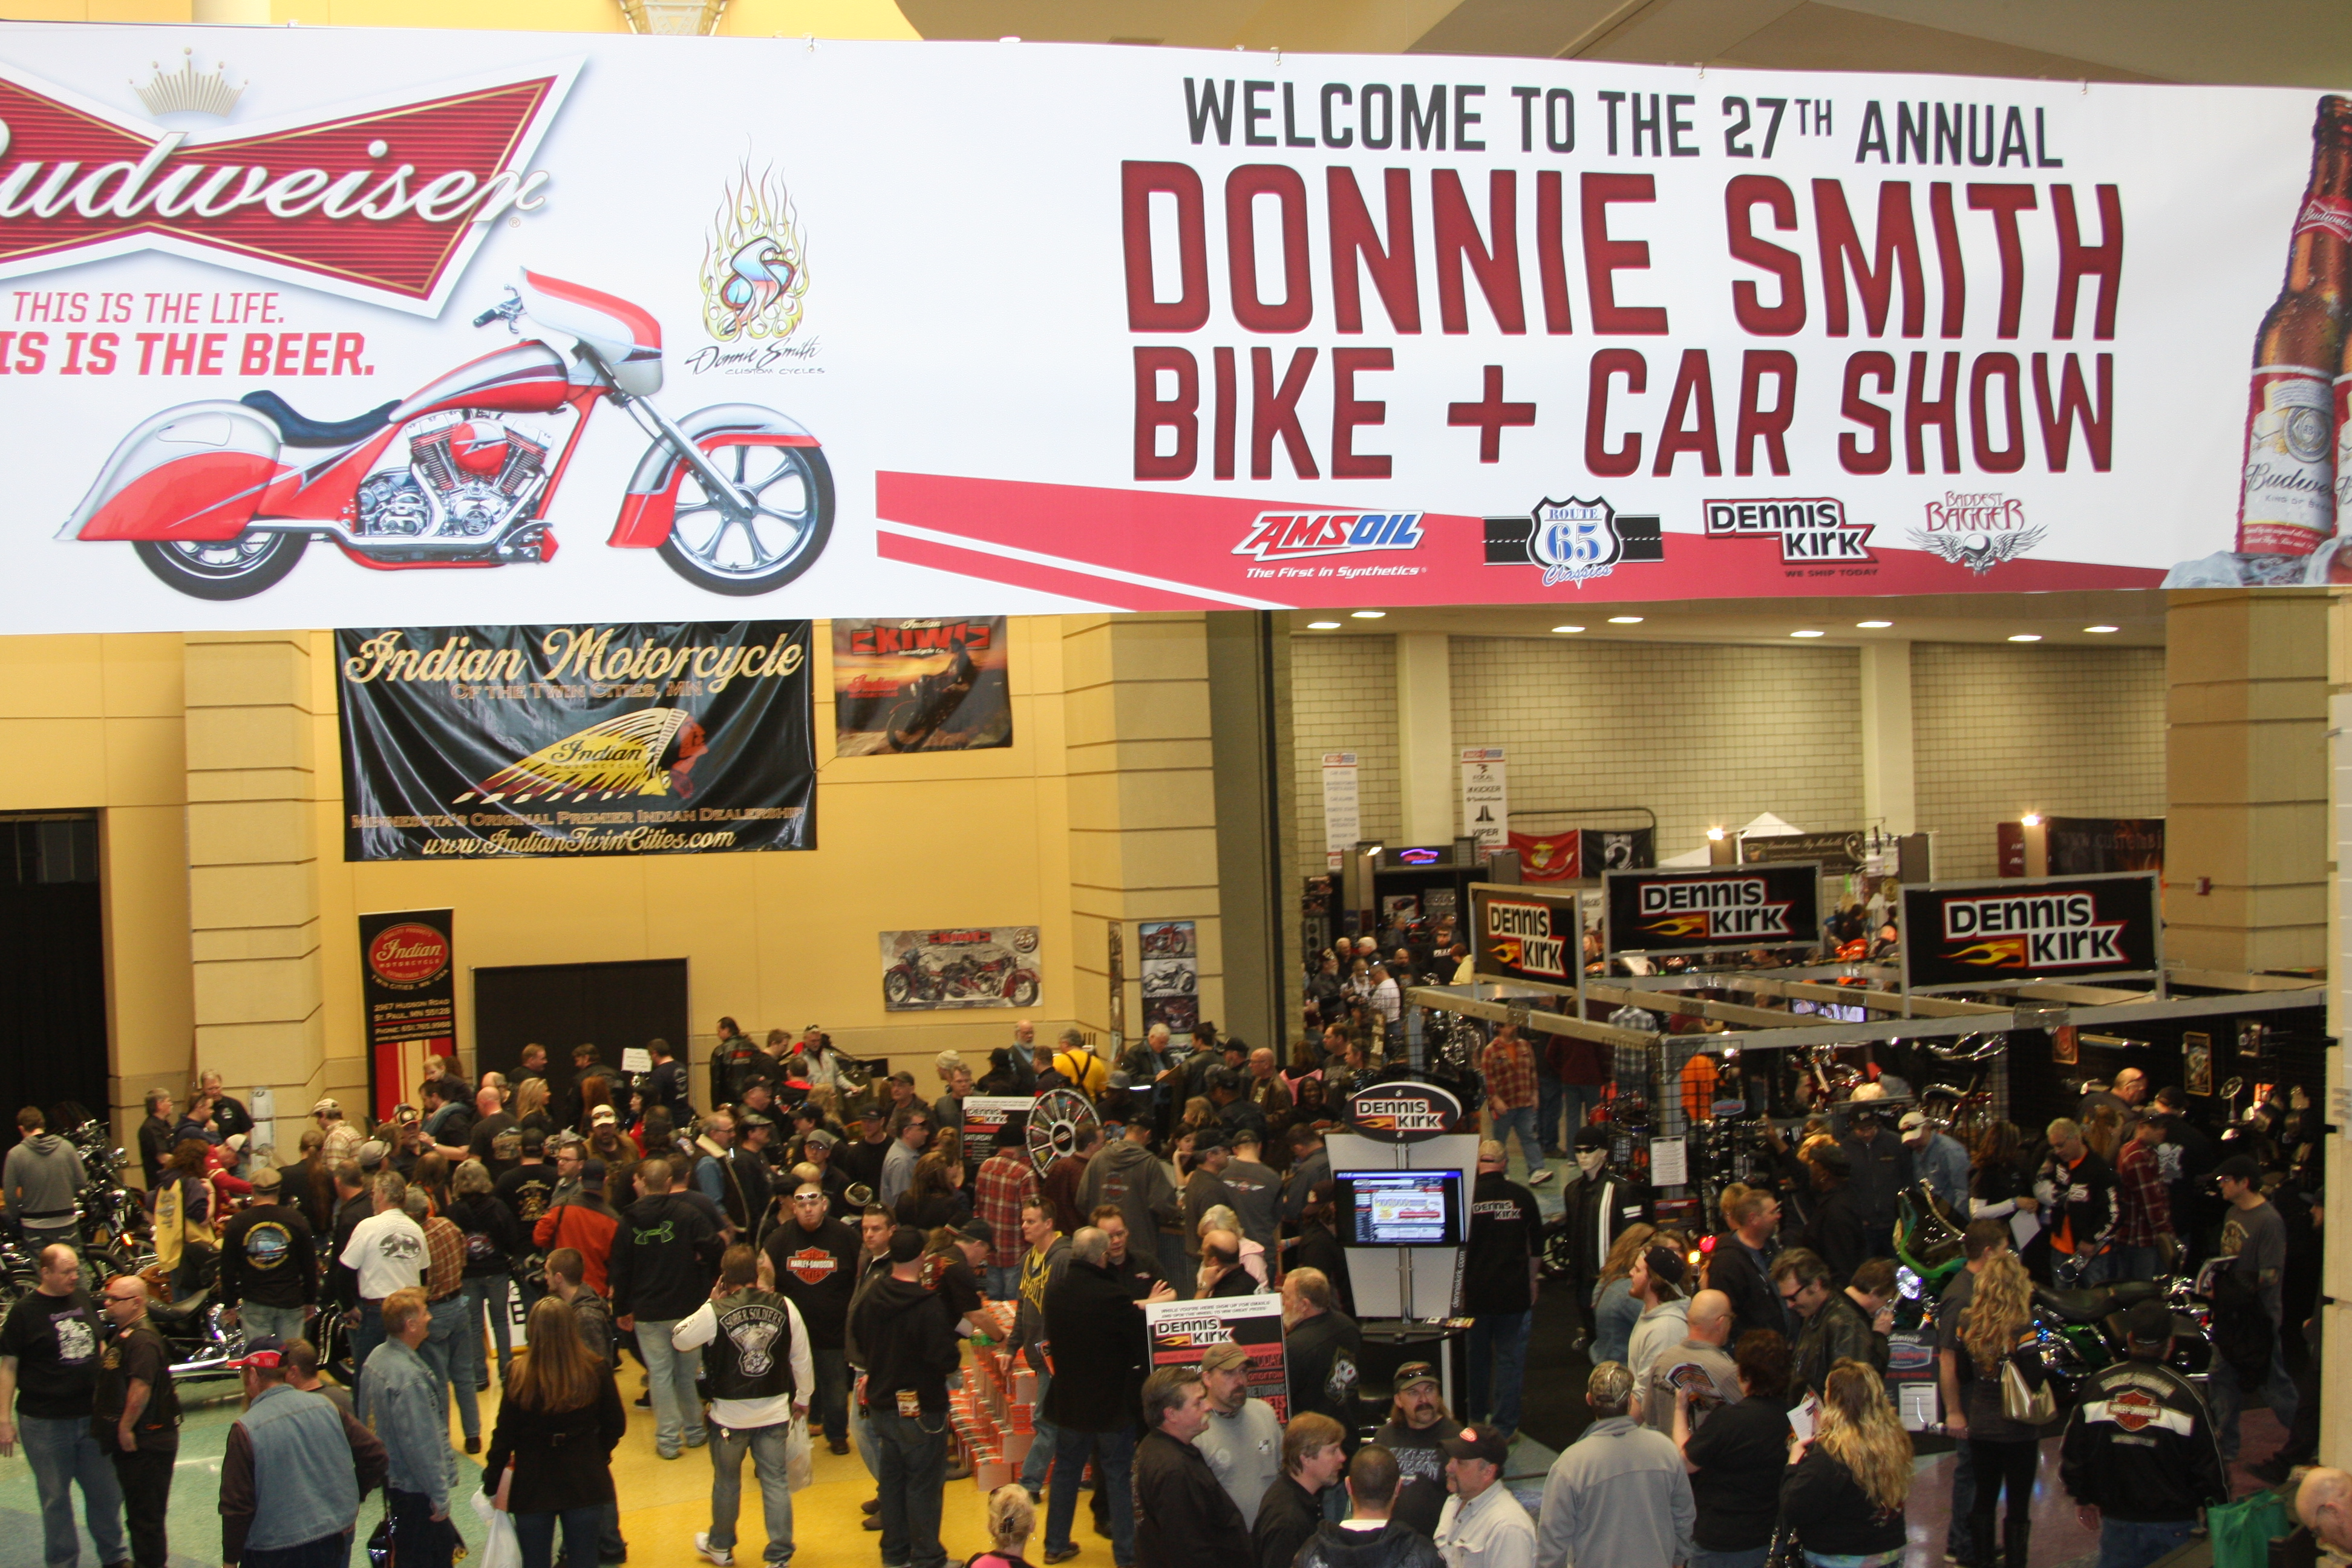 The 2014 Donnie Smith Show